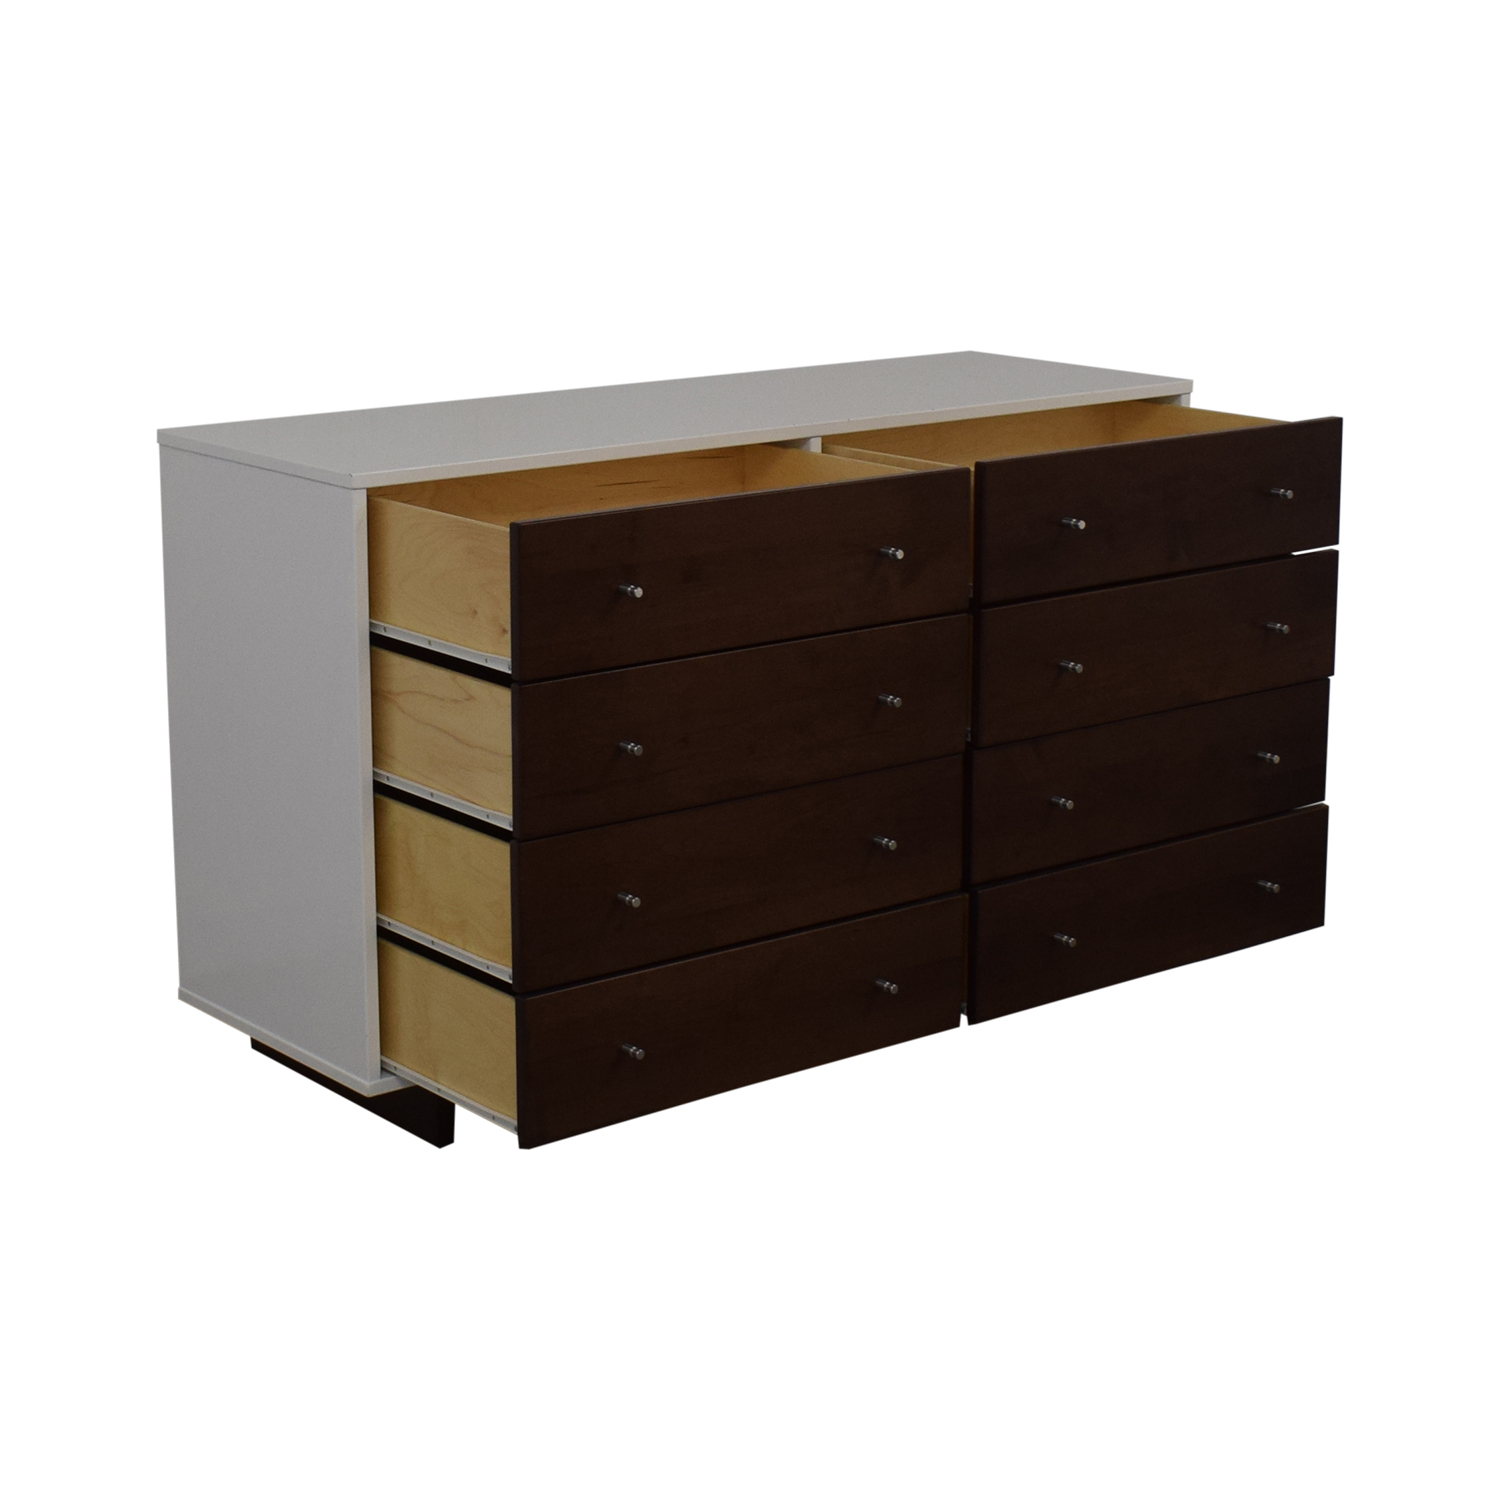 Room & Board Room & Board Moda Eight-Drawer Dresser used